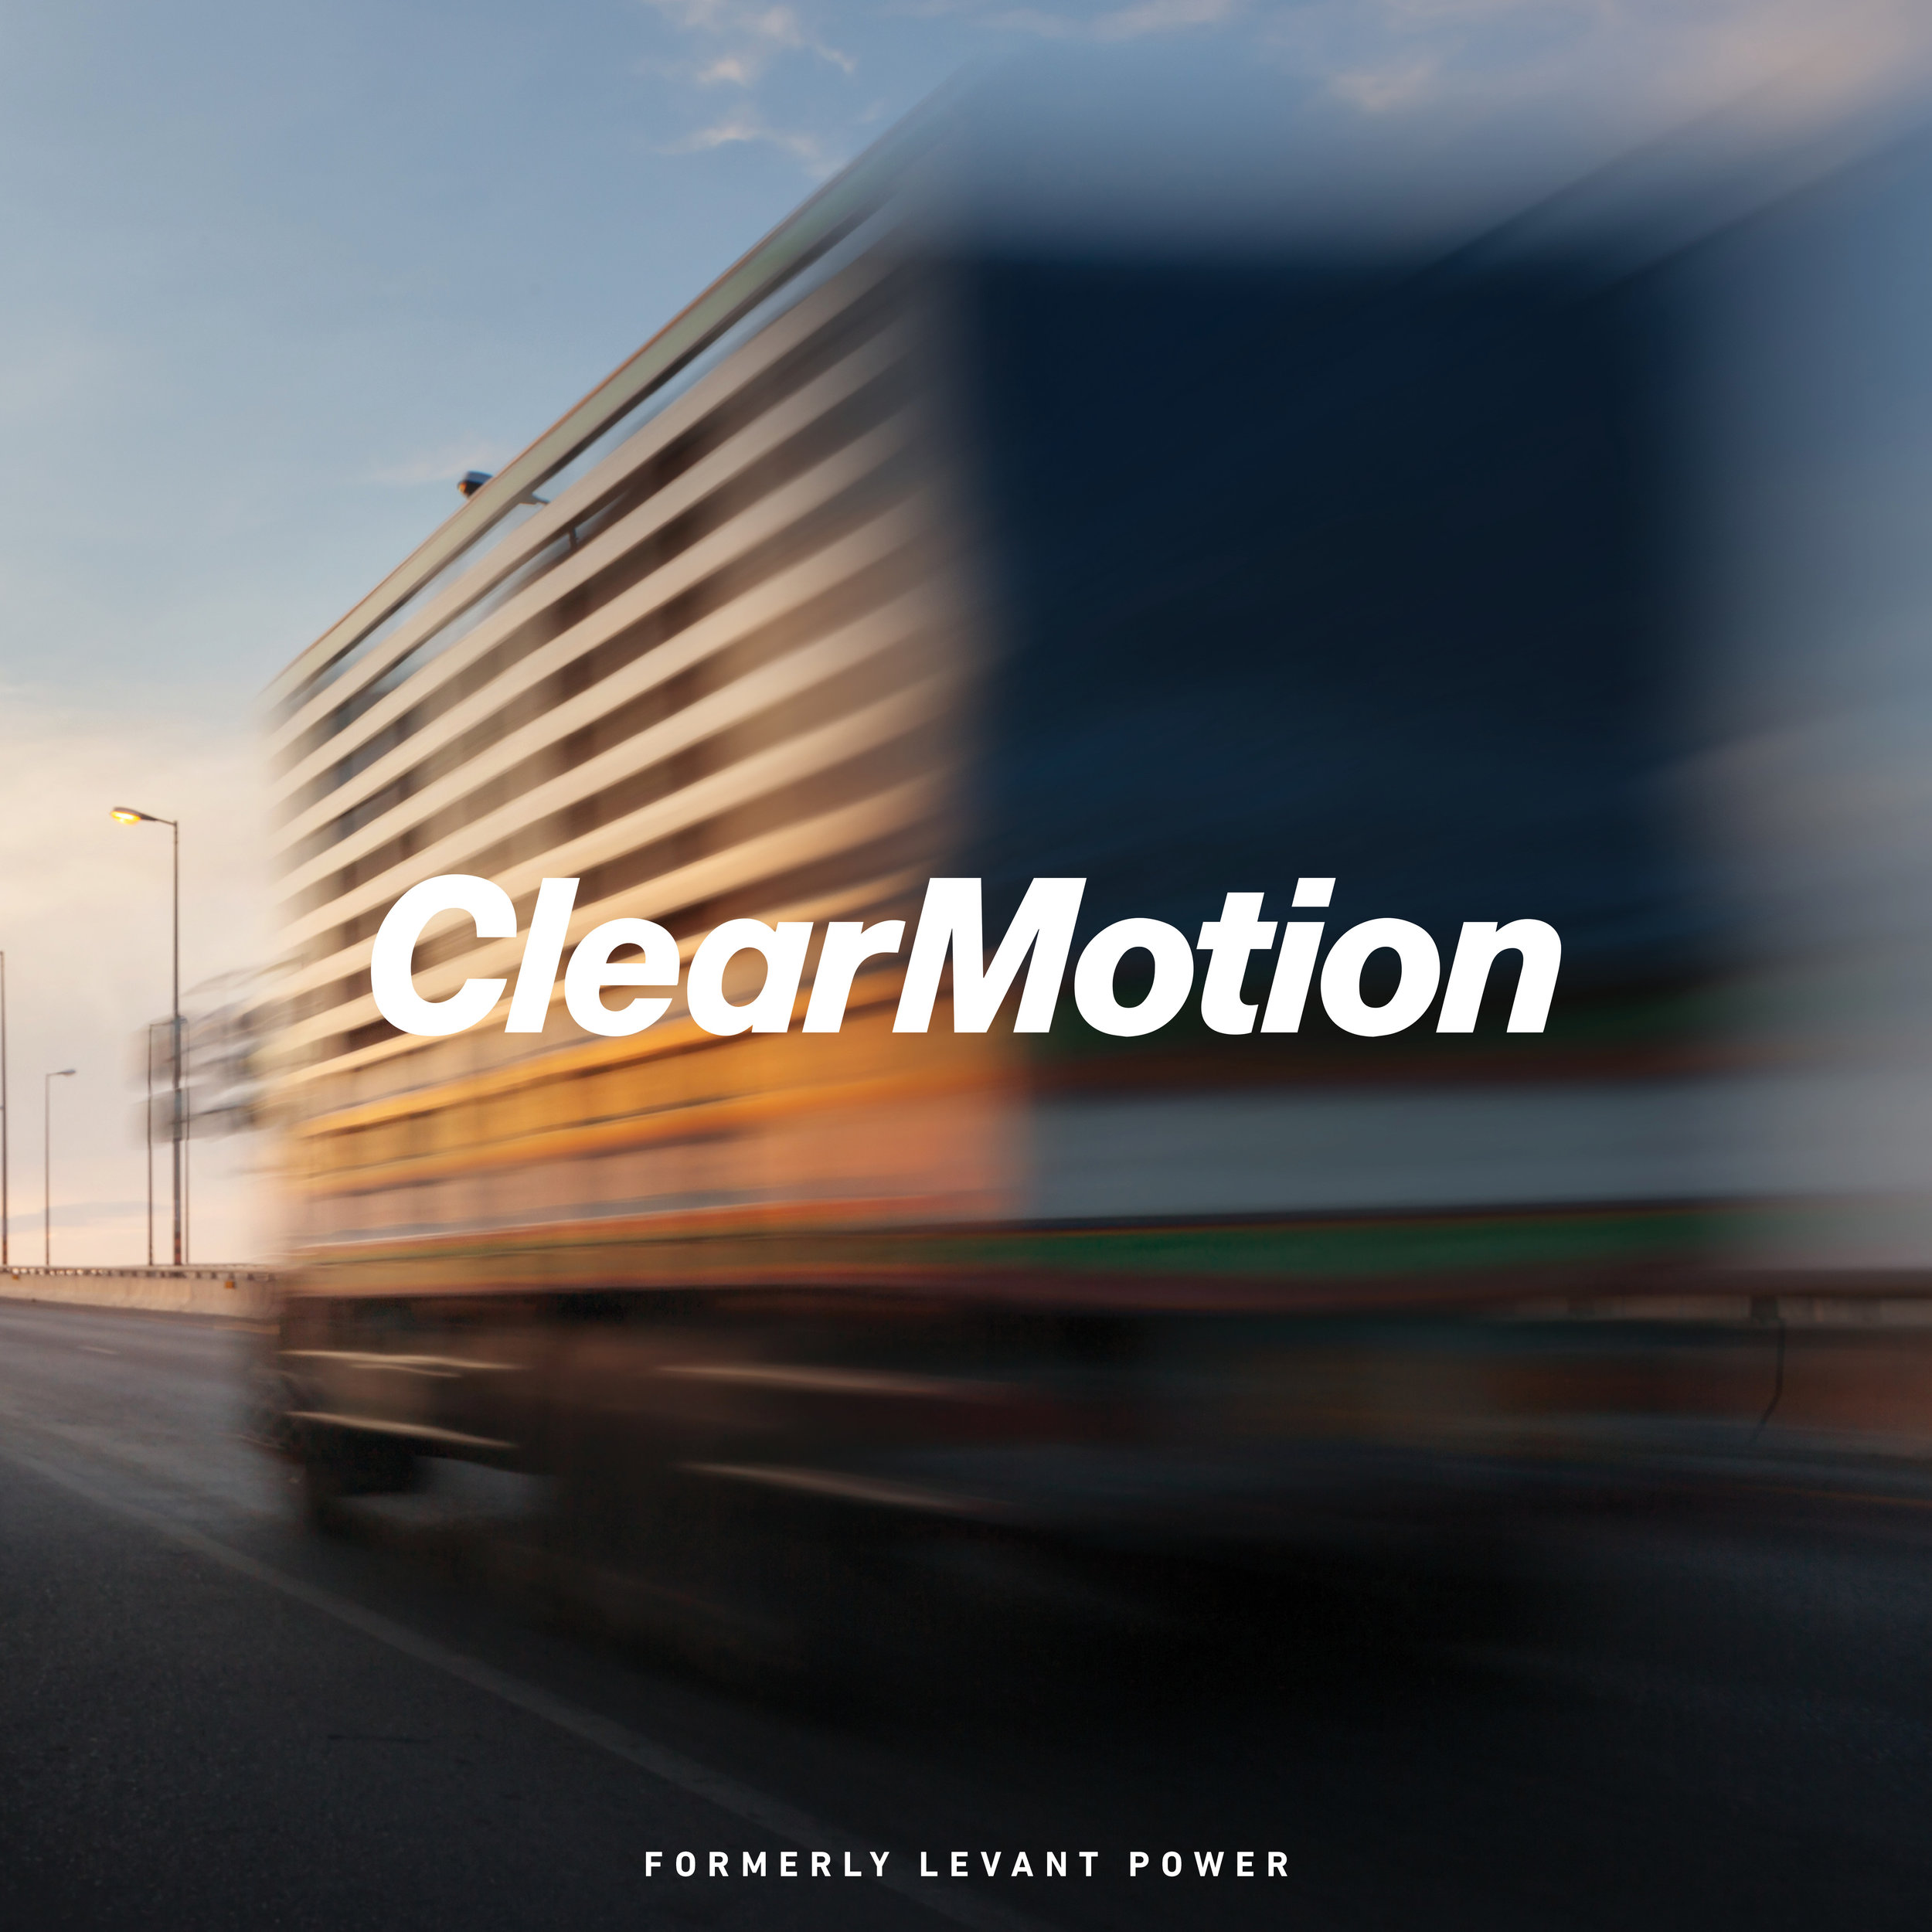 Clear Motion (Levant Power)